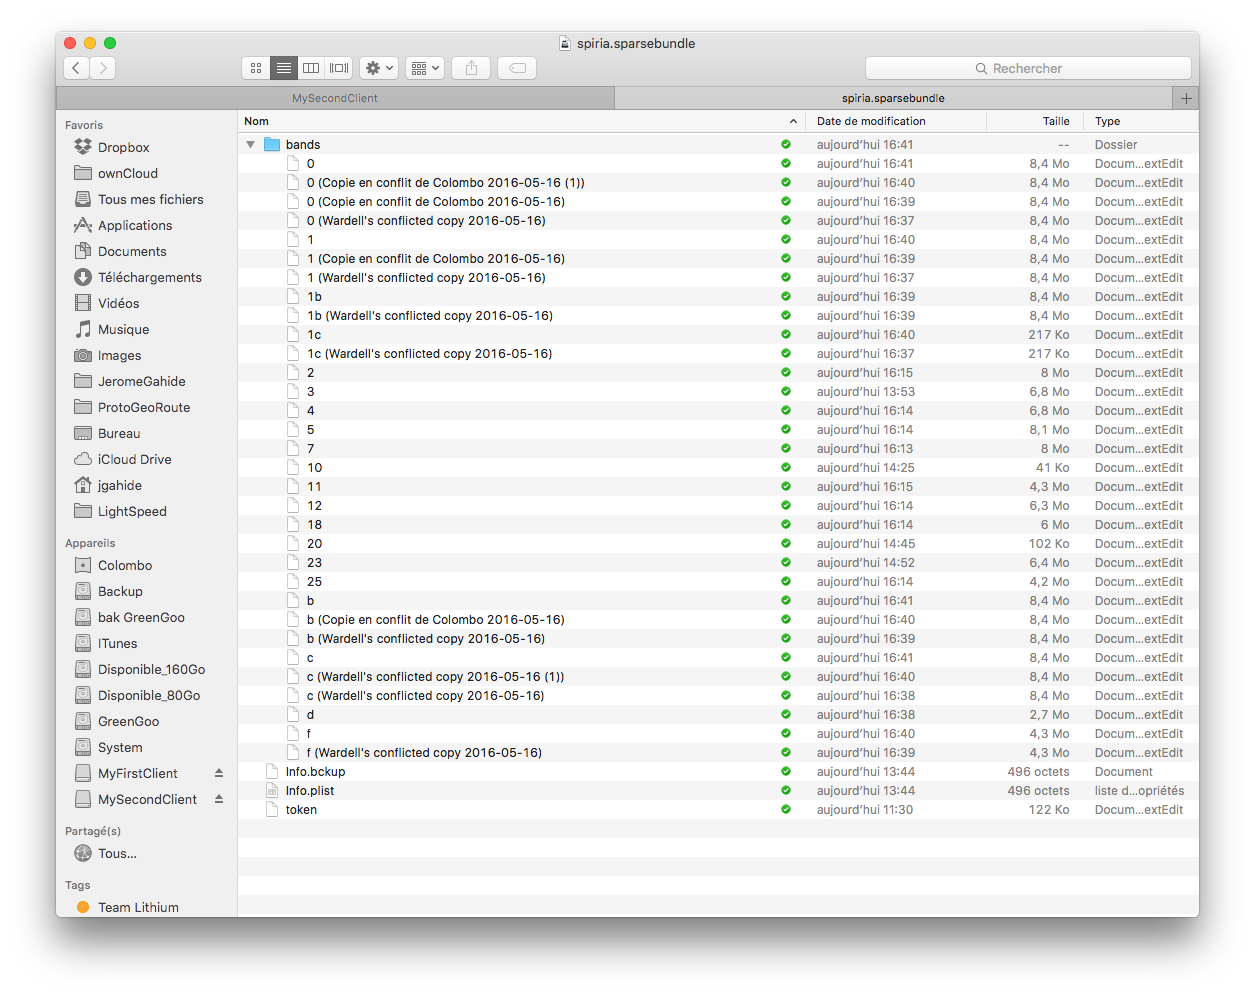 Using Sparse Bundle Images in Mac and Sharing them in Dropbox | Blog